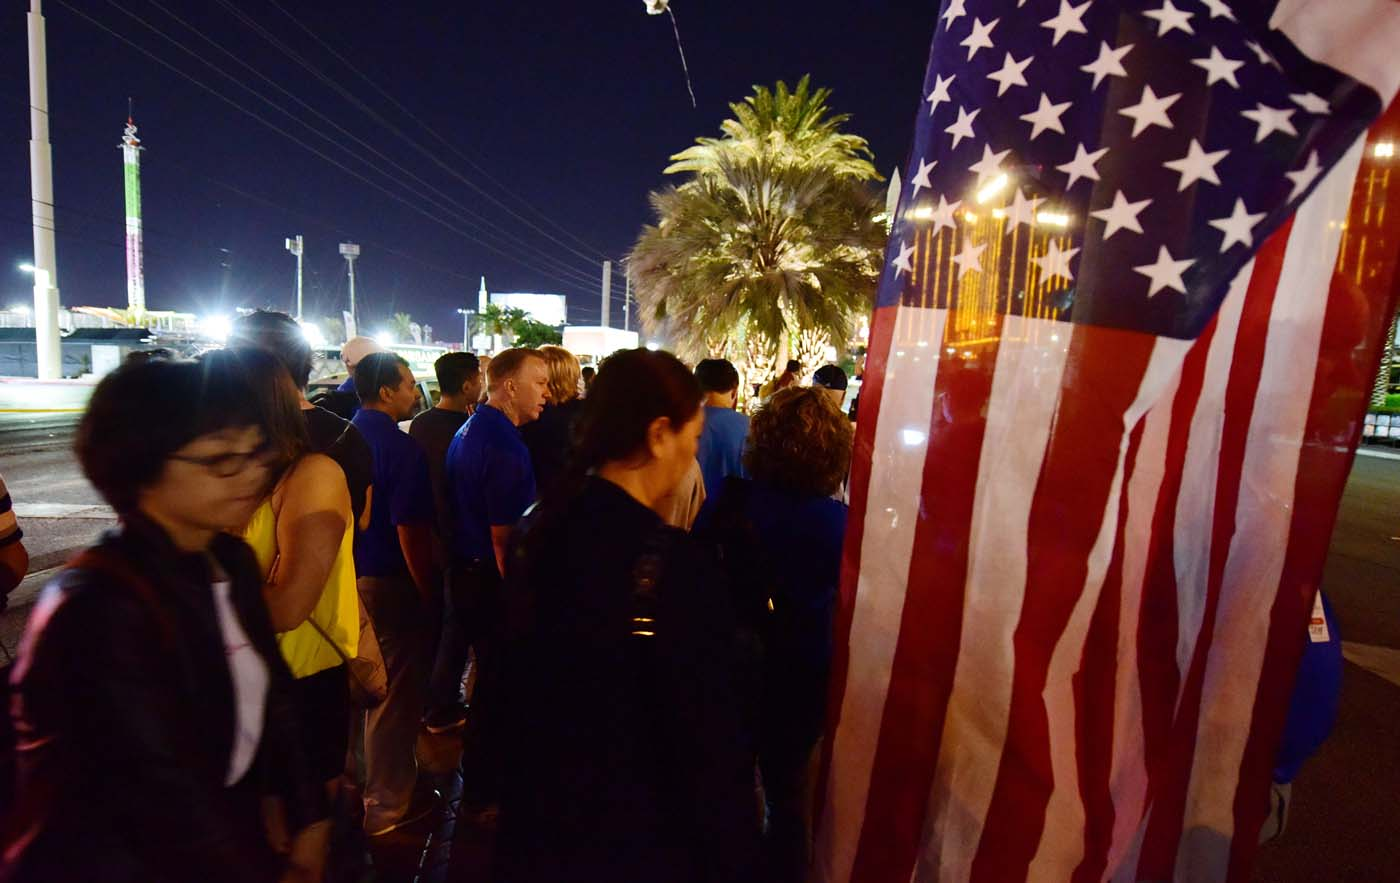 People look on near a US national flag at a makeshift memorial near the Mandalay Hotel on the Las Vegas Strip, in Las Vegas, Nevada on October 3, 2017, after a gunman killed 58 people and wounded more than 500 others, before taking his own life, when he opened fire from a hotel on a country music festival. Police said the gunman, a 64-year-old local resident named as Stephen Paddock, had been killed after a SWAT team responded to reports of multiple gunfire from the 32nd floor of the Mandalay Bay, a hotel-casino next to the concert venue. / AFP PHOTO / Robyn Beck